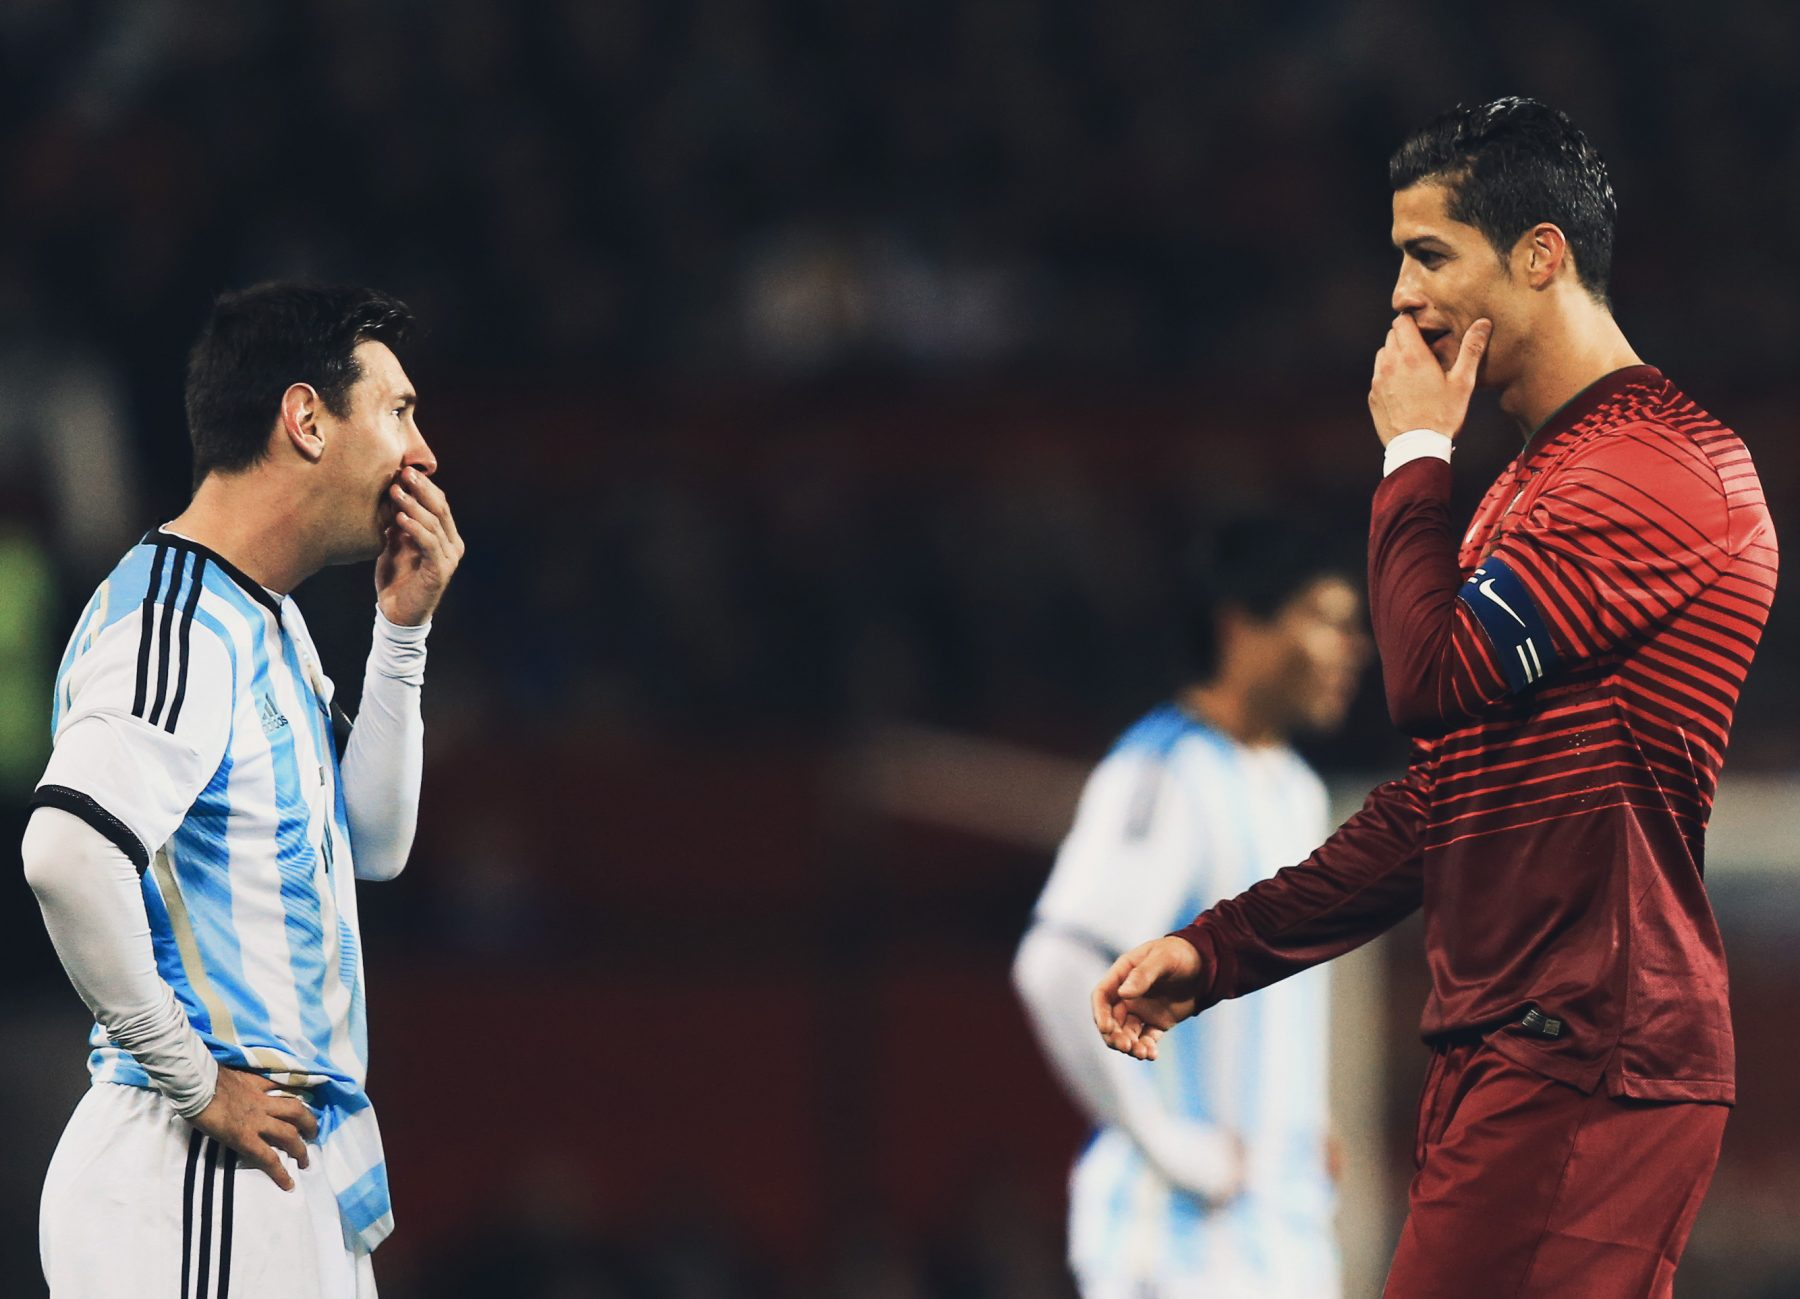 finest selection aae05 0fedf A legacy left behind: Lionel Messi, Cristiano Ronaldo and a ...